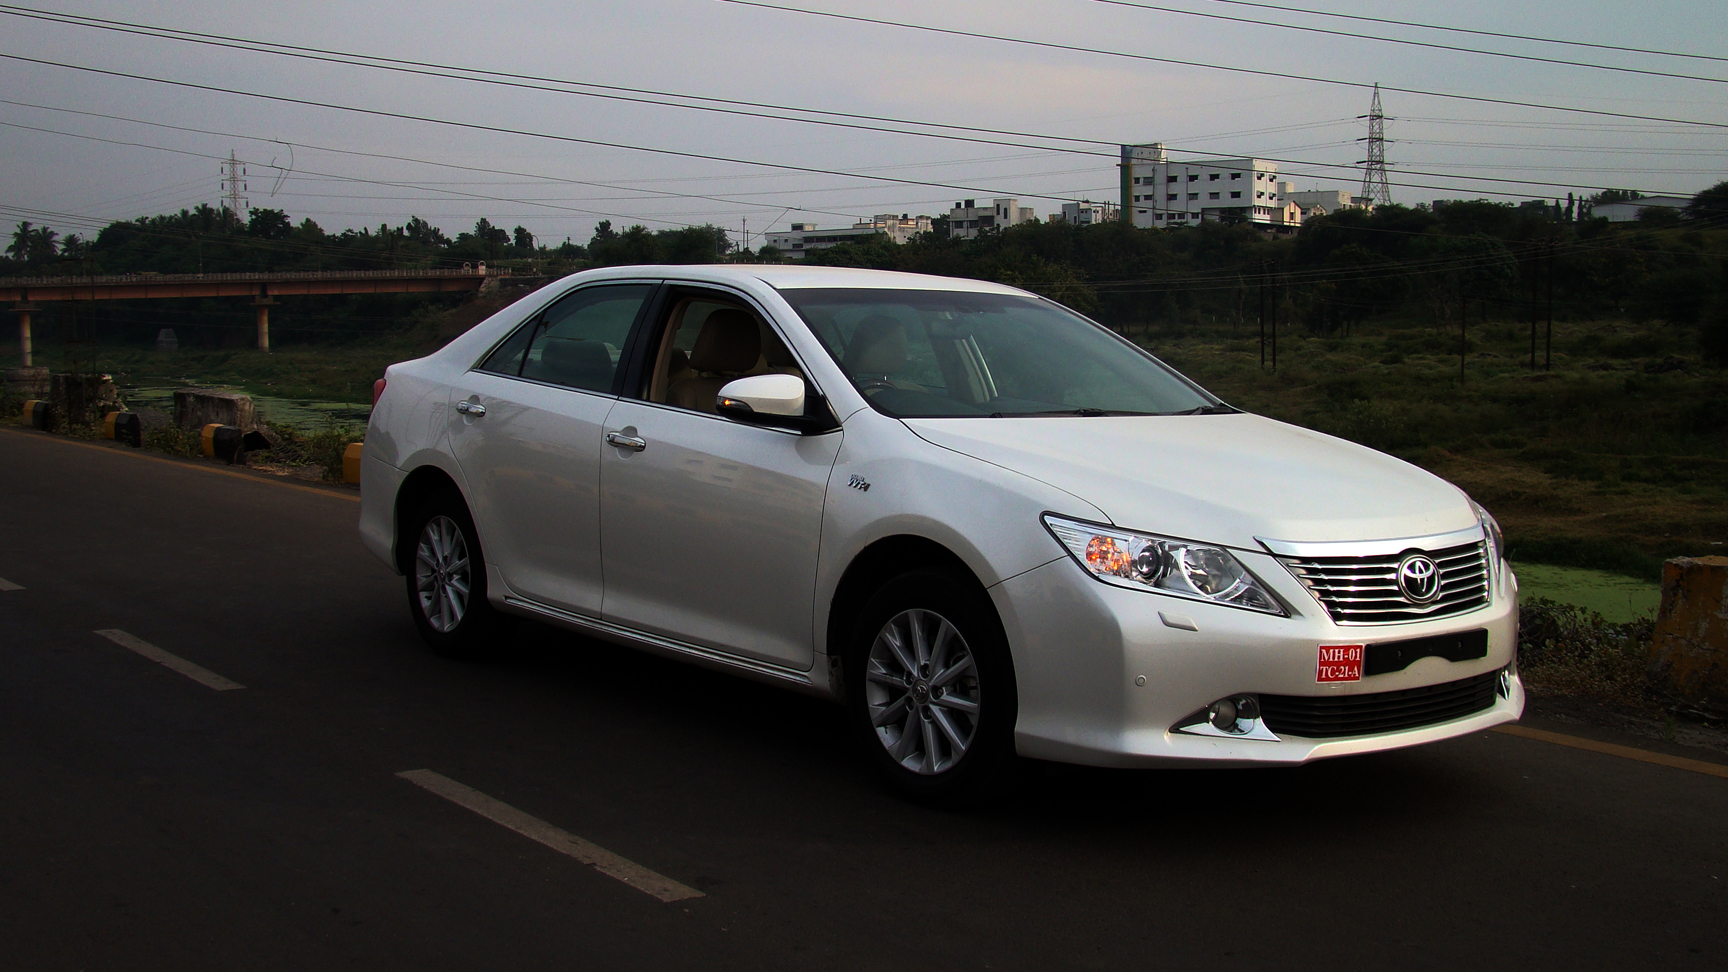 Https Commons Wikimedia Org Wiki File White Toyota Camry Jpg